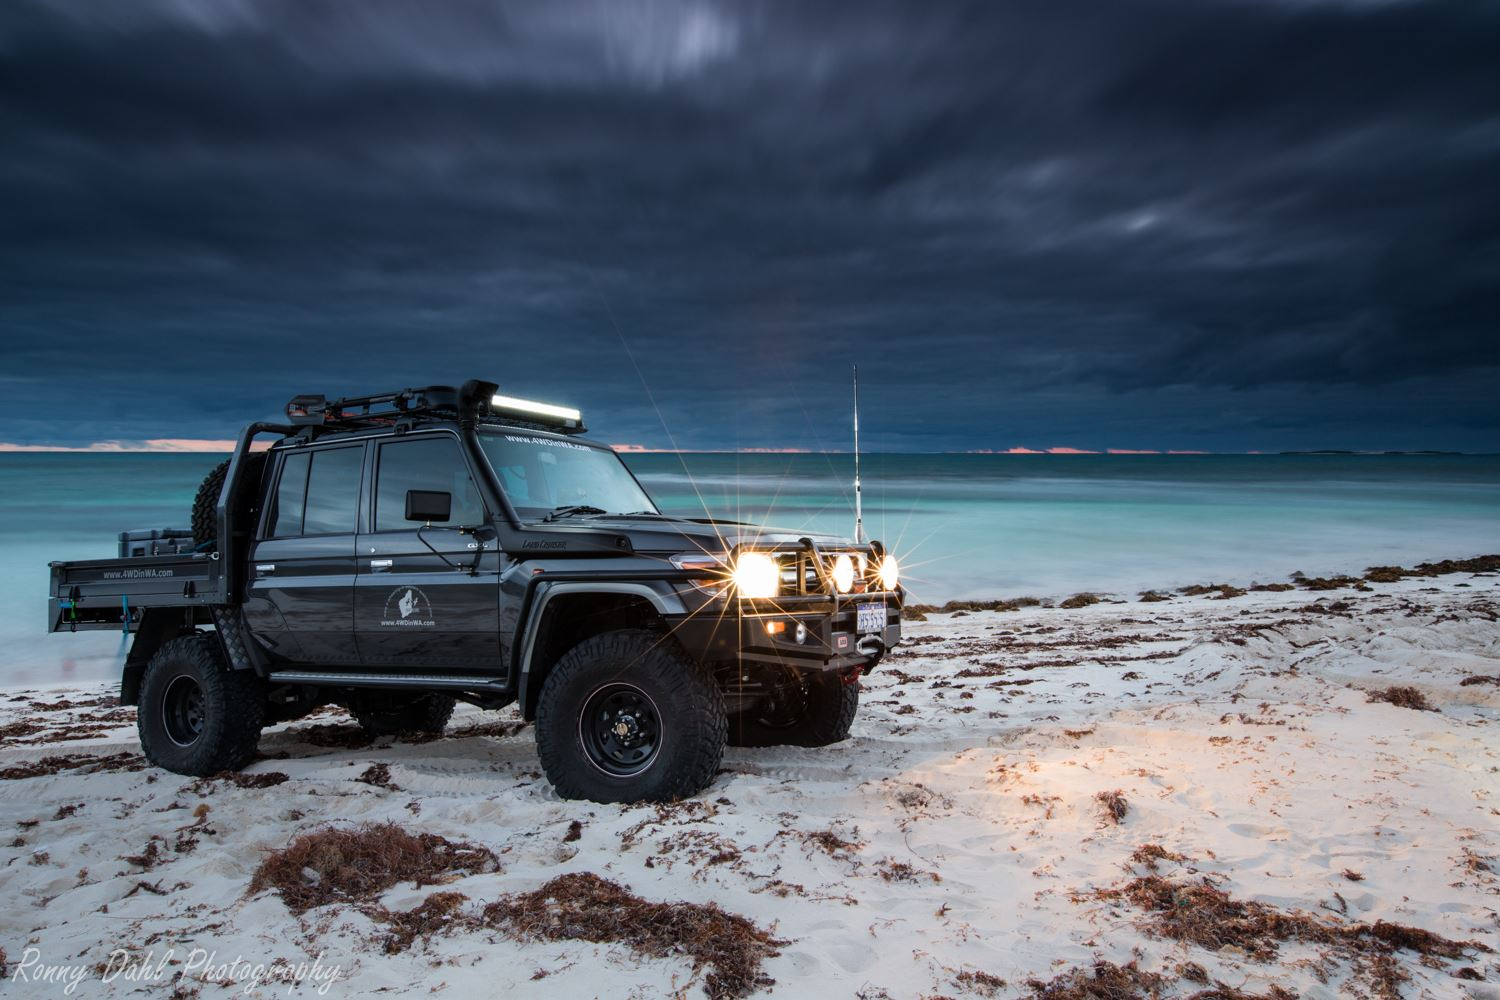 Toyota 79 Series Land Cruiser at sunset.